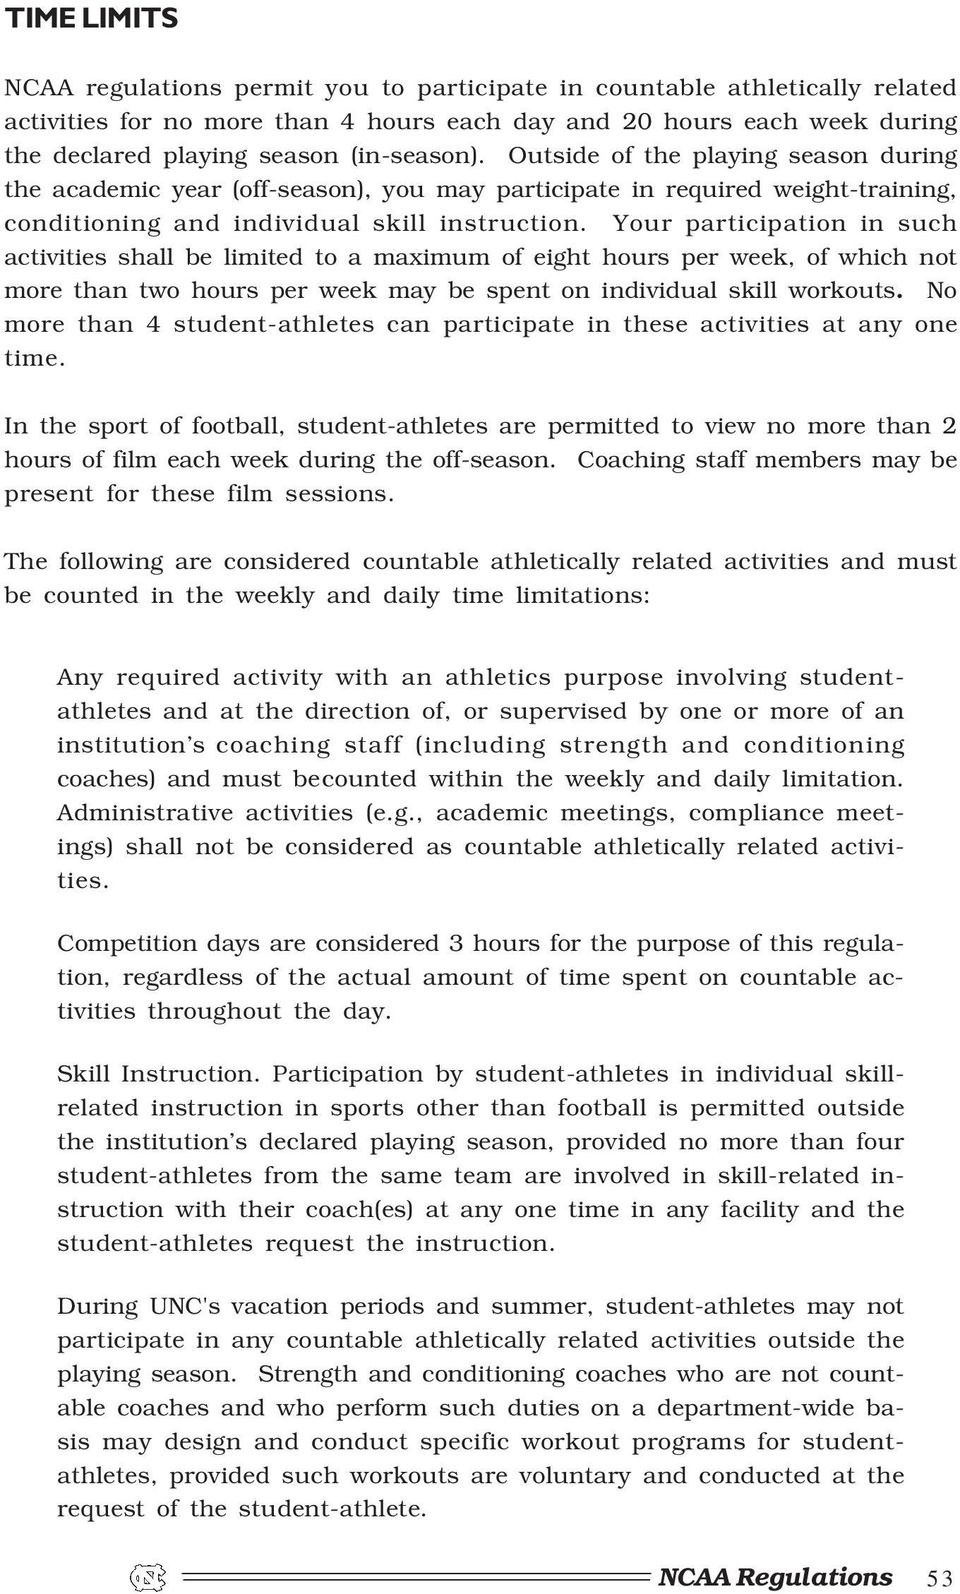 Your participation in such activities shall be limited to a maximum of eight hours per week, of which not more than two hours per week may be spent on individual skill workouts.